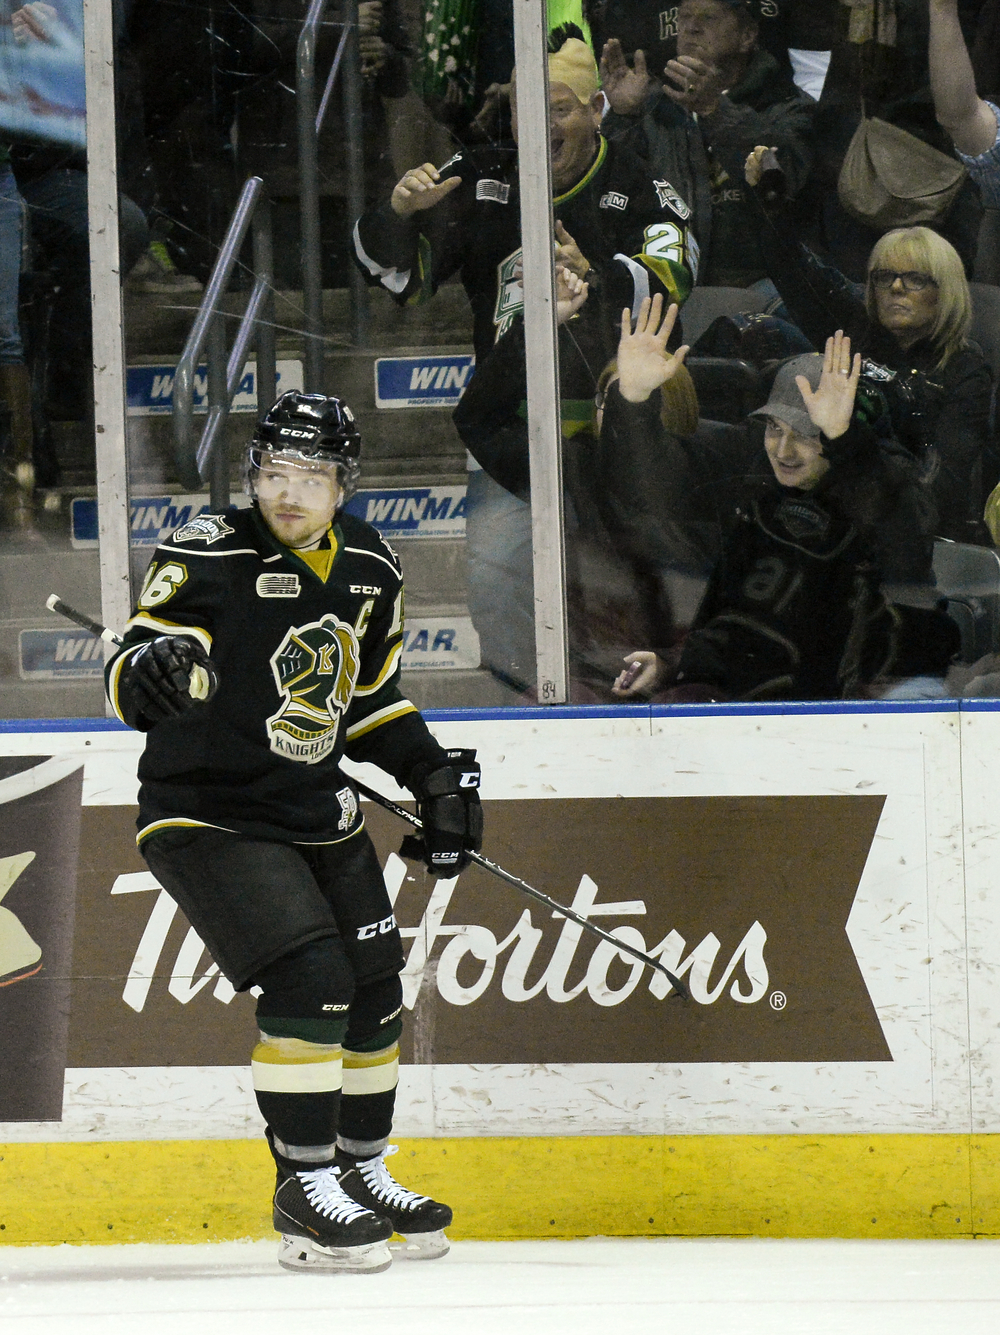 Max Domi celebrates after his 100th point during a game against Saginaw Spirit at Budweiser Gardens in London, Ont. on Friday March 20, 2015. The Knights lead 4-3 after the first period. ANDREW LAHODYNSKYJ/ The London Free Press /QMI AGENCY